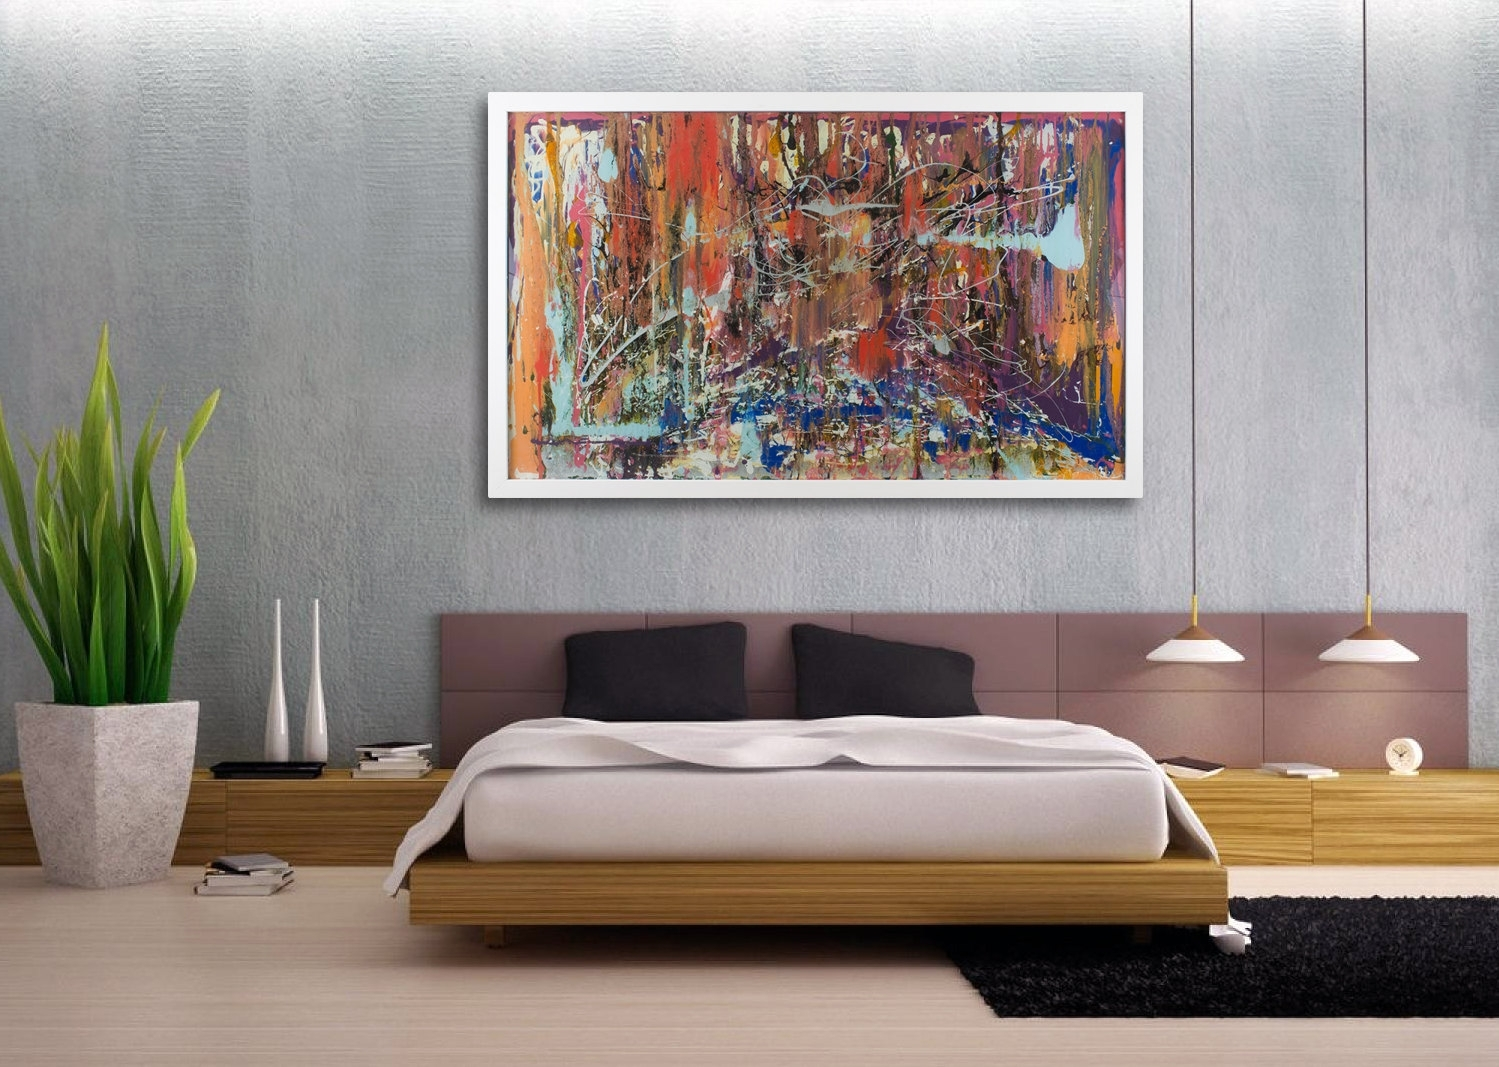 Expensive Large Canvas Wall Art Bedroom — Joanne Russo Homesjoanne Throughout Latest Quirky Canvas Wall Art (View 4 of 15)